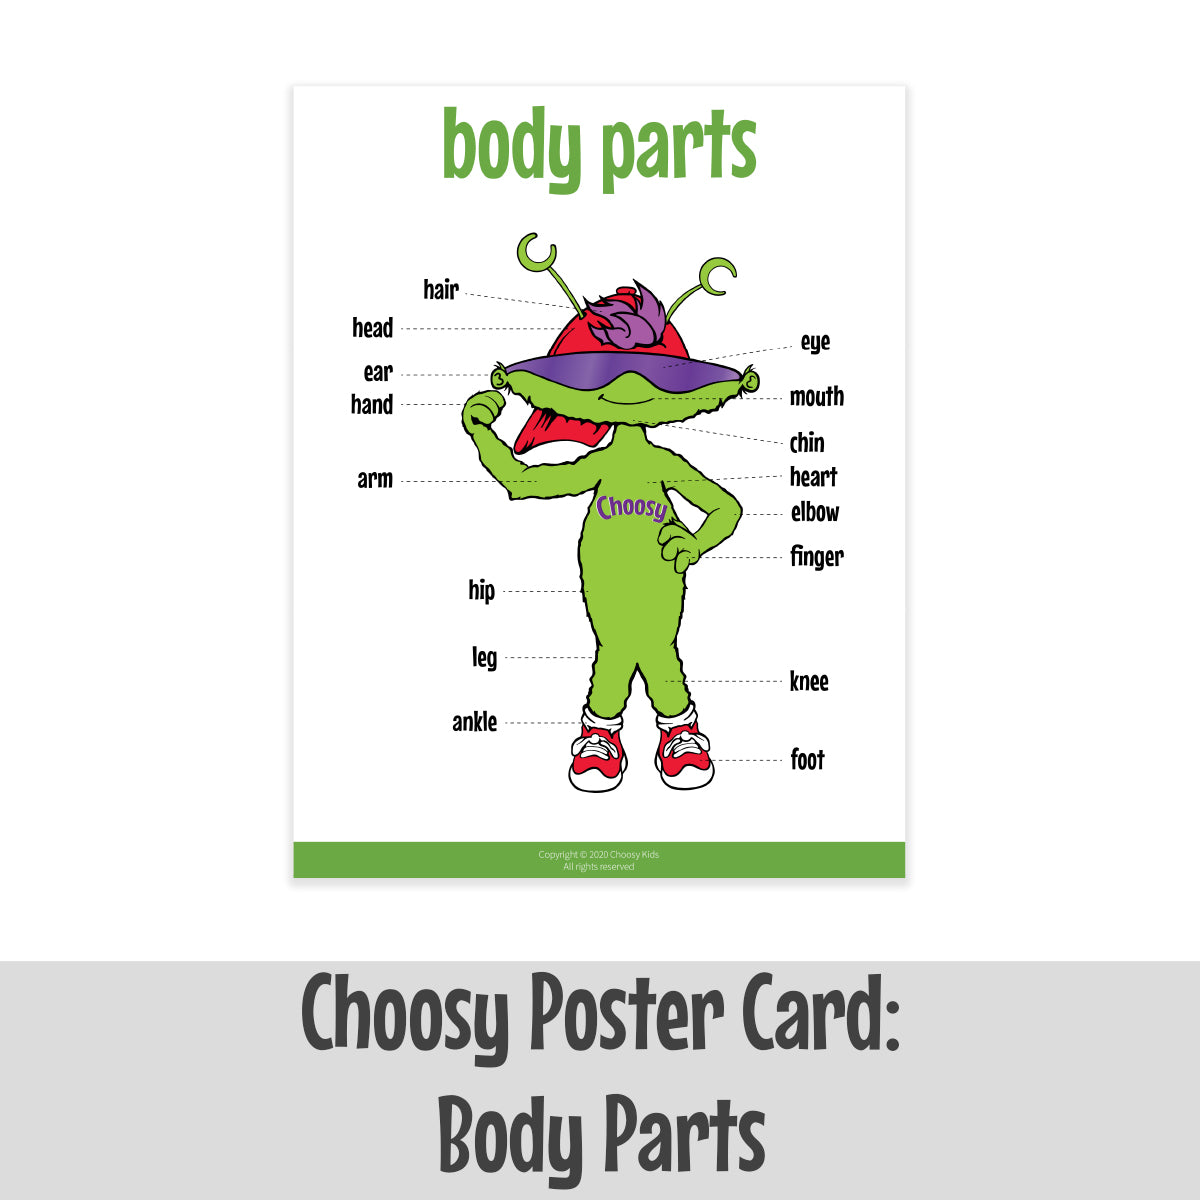 Choosy Poster Card: Body Parts